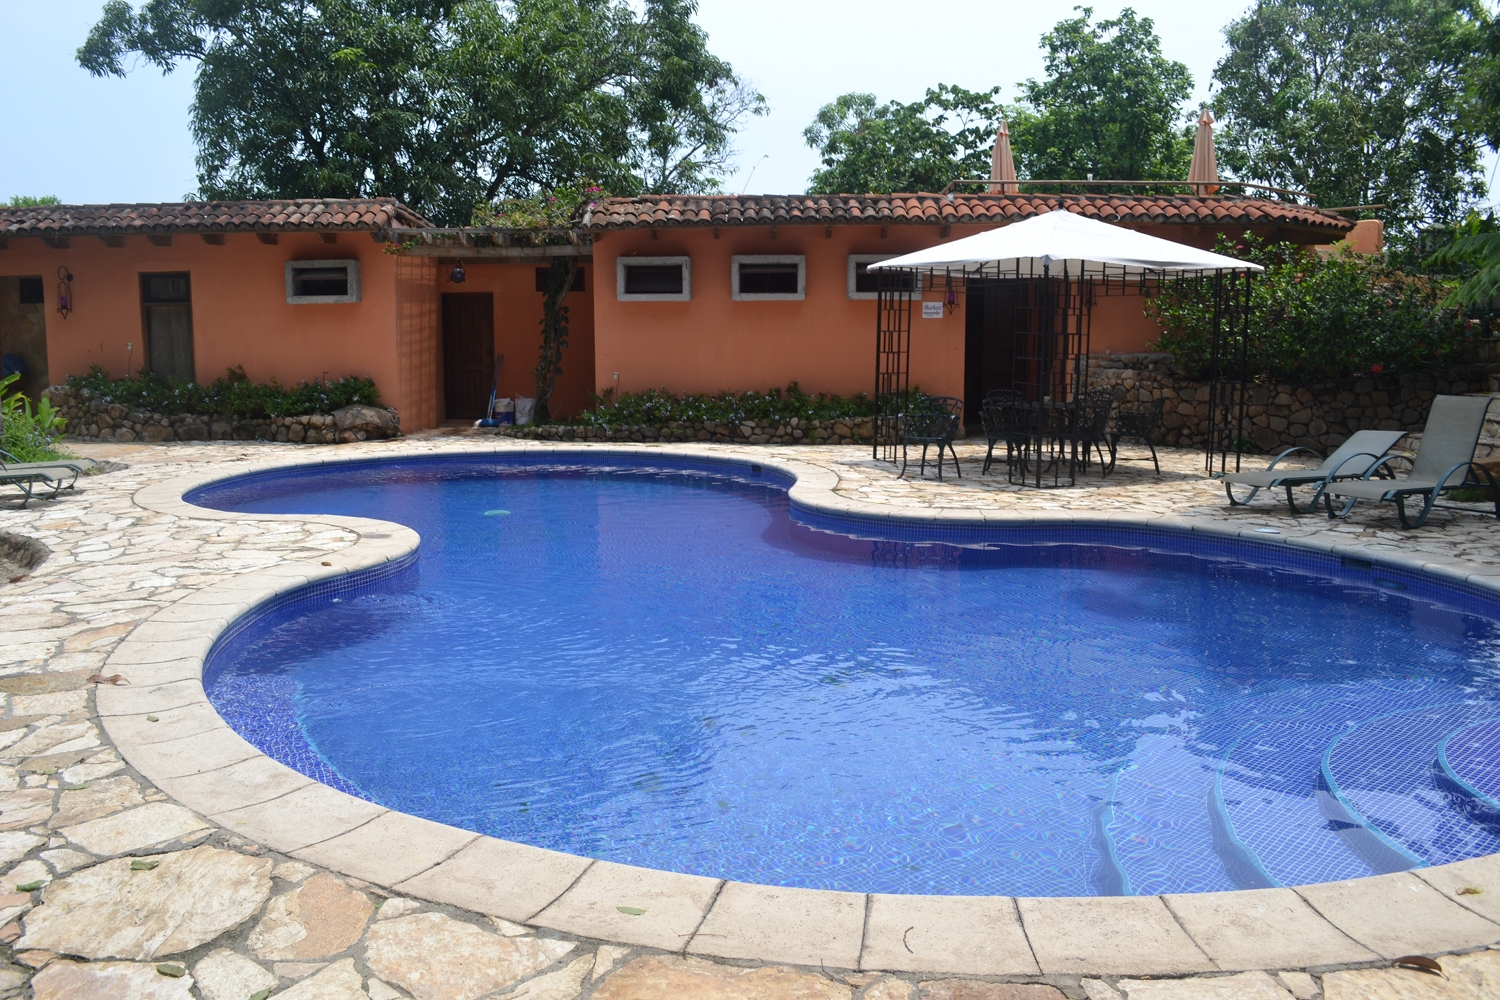 Hotel los almendros de san lorenzo in suchitoto el salvador for Infinity swimming pools pictures